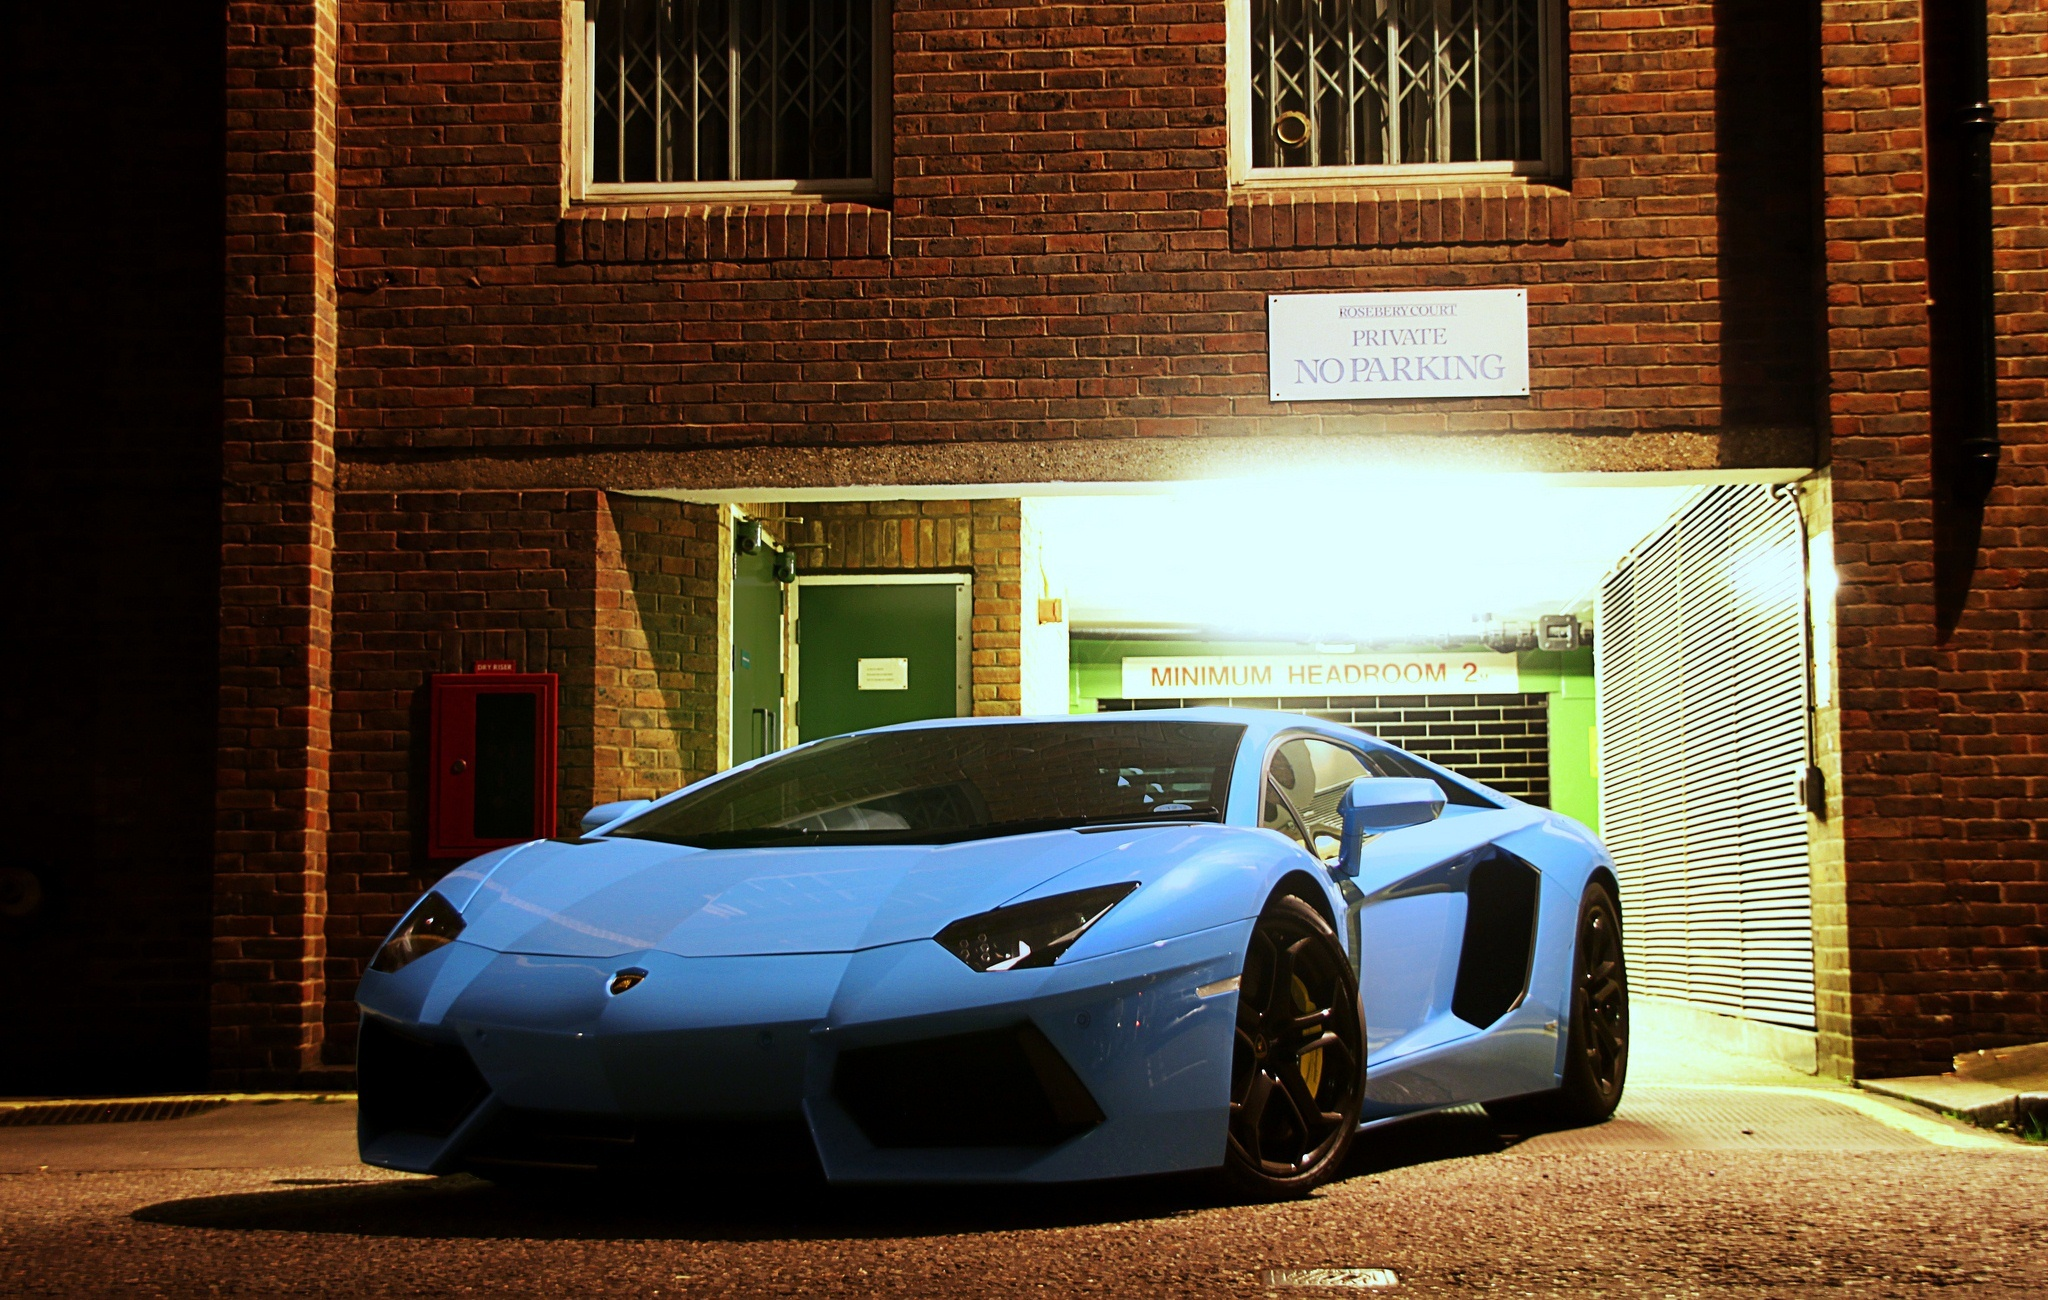 142568 download wallpaper Cars, Lamborghini, Front View, Aventador, Lp700-4 screensavers and pictures for free